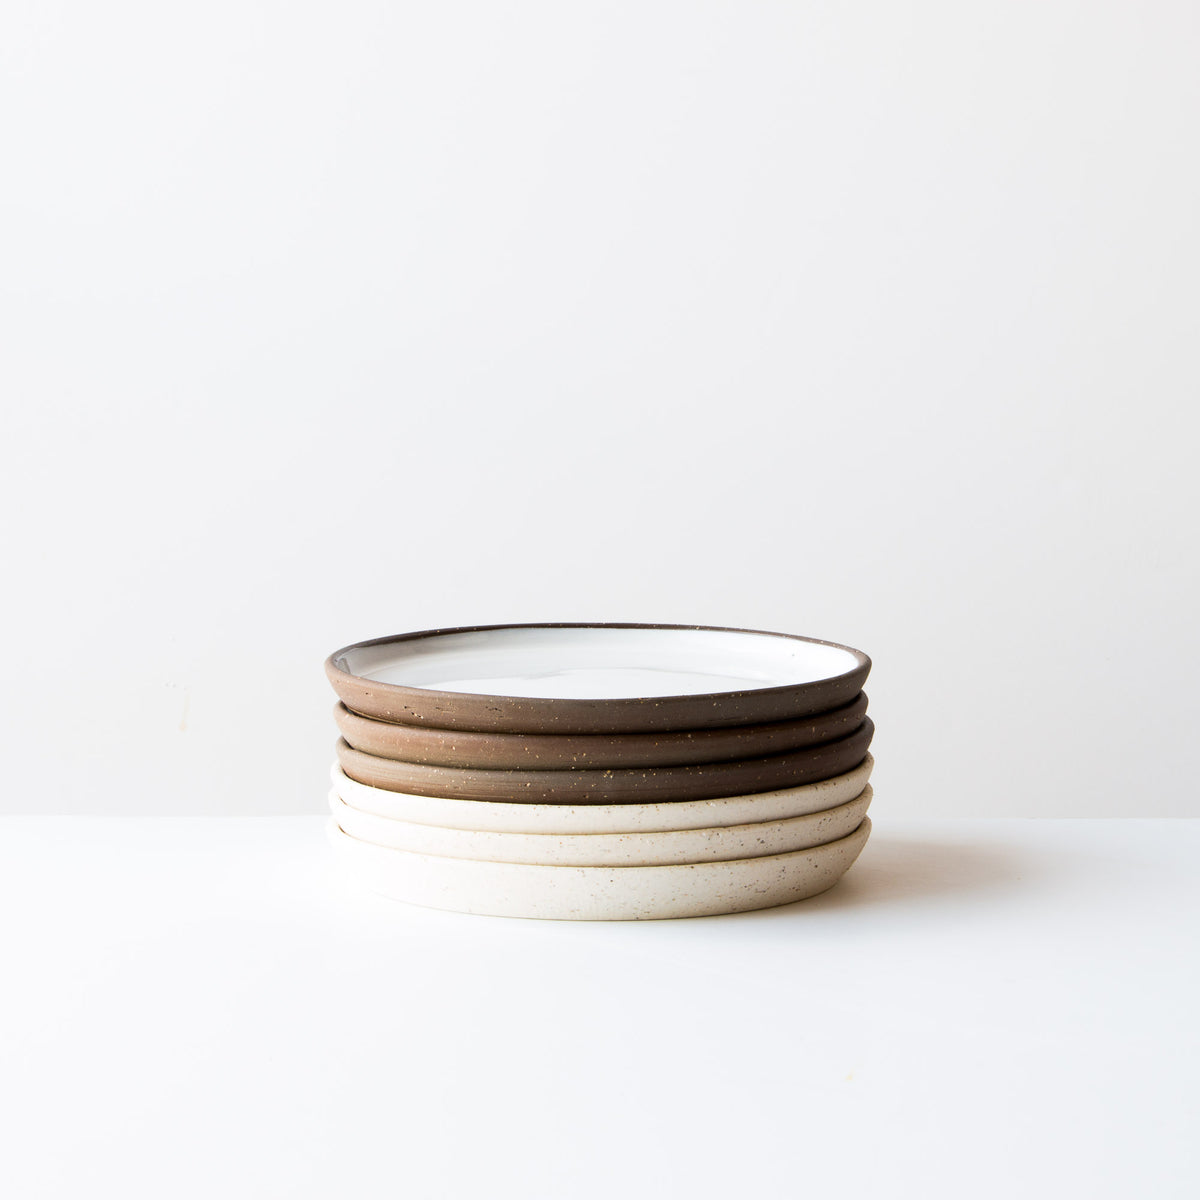 Atelier Trema Small Ceramic Plates - Handmade in Quebec, Canada